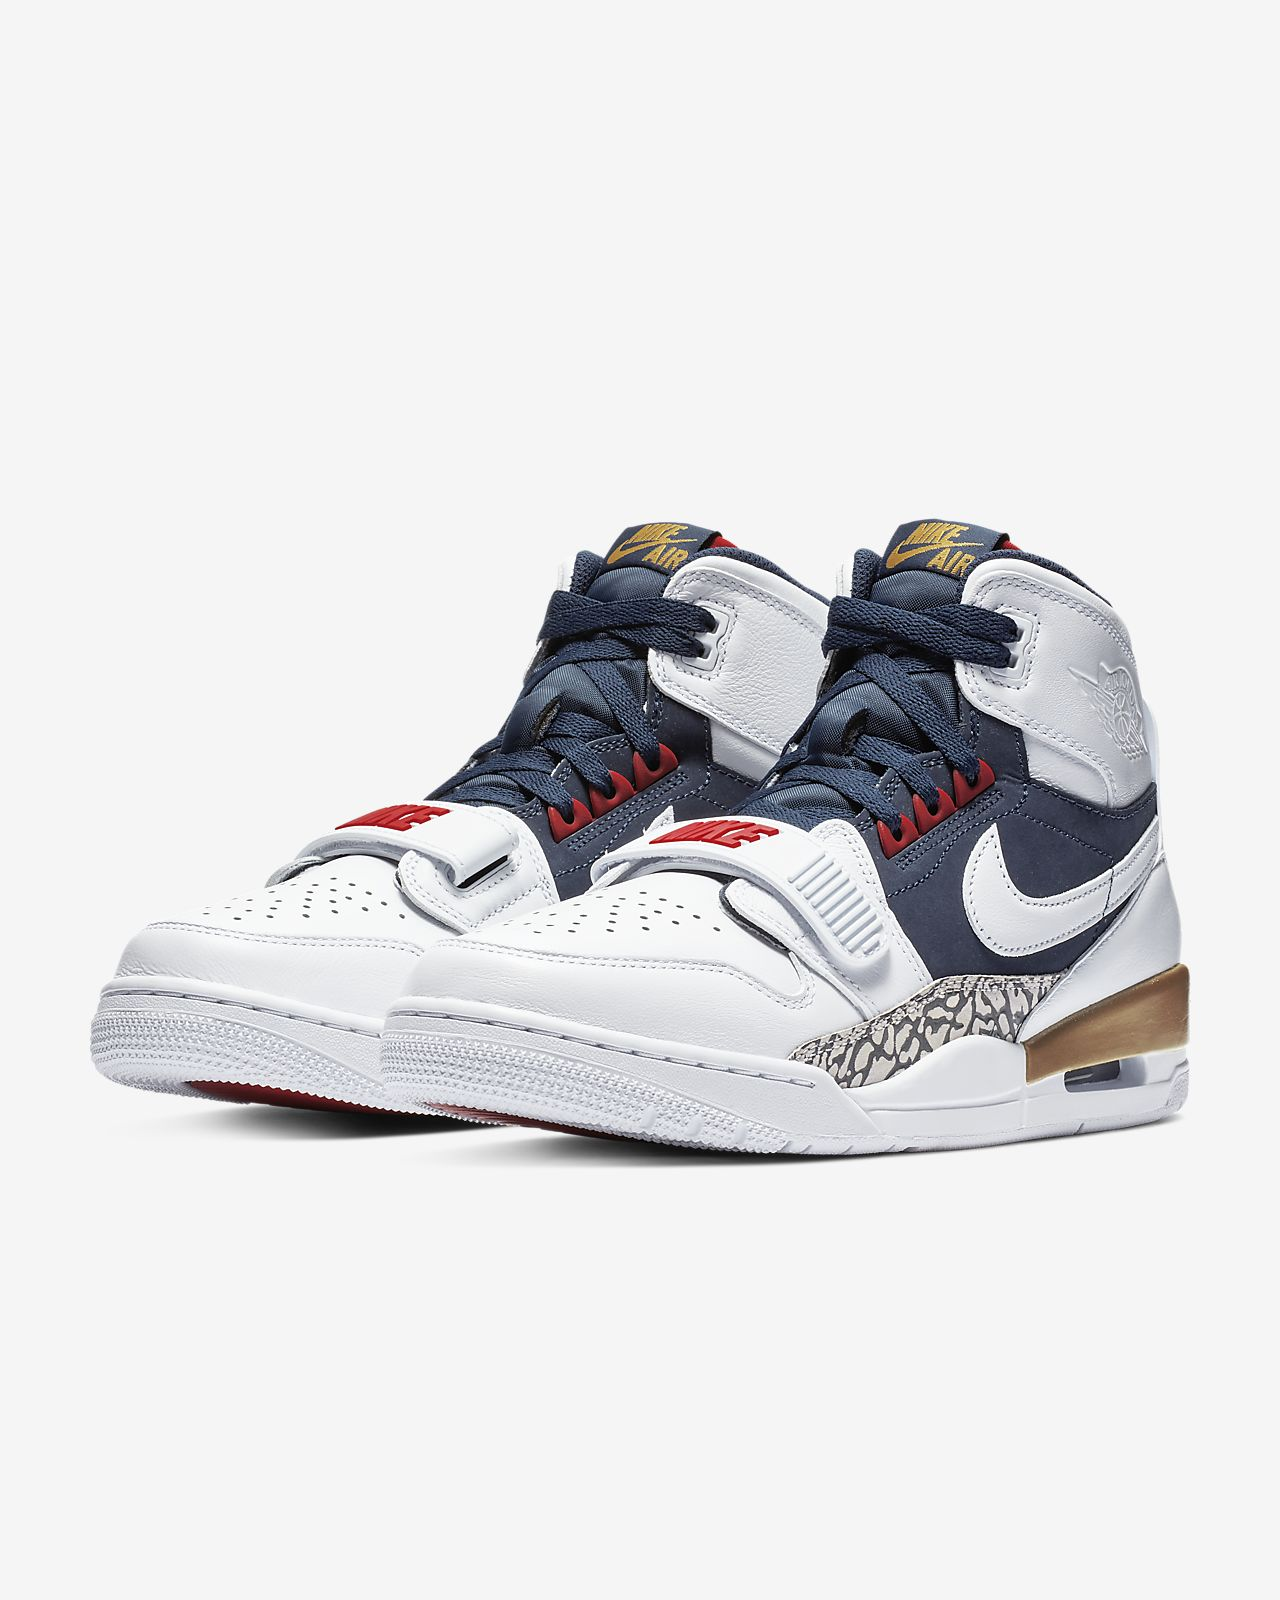 finest selection 2ad61 fabb0 Low Resolution Chaussure Air Jordan Legacy 312 pour Homme Chaussure Air  Jordan Legacy 312 pour Homme